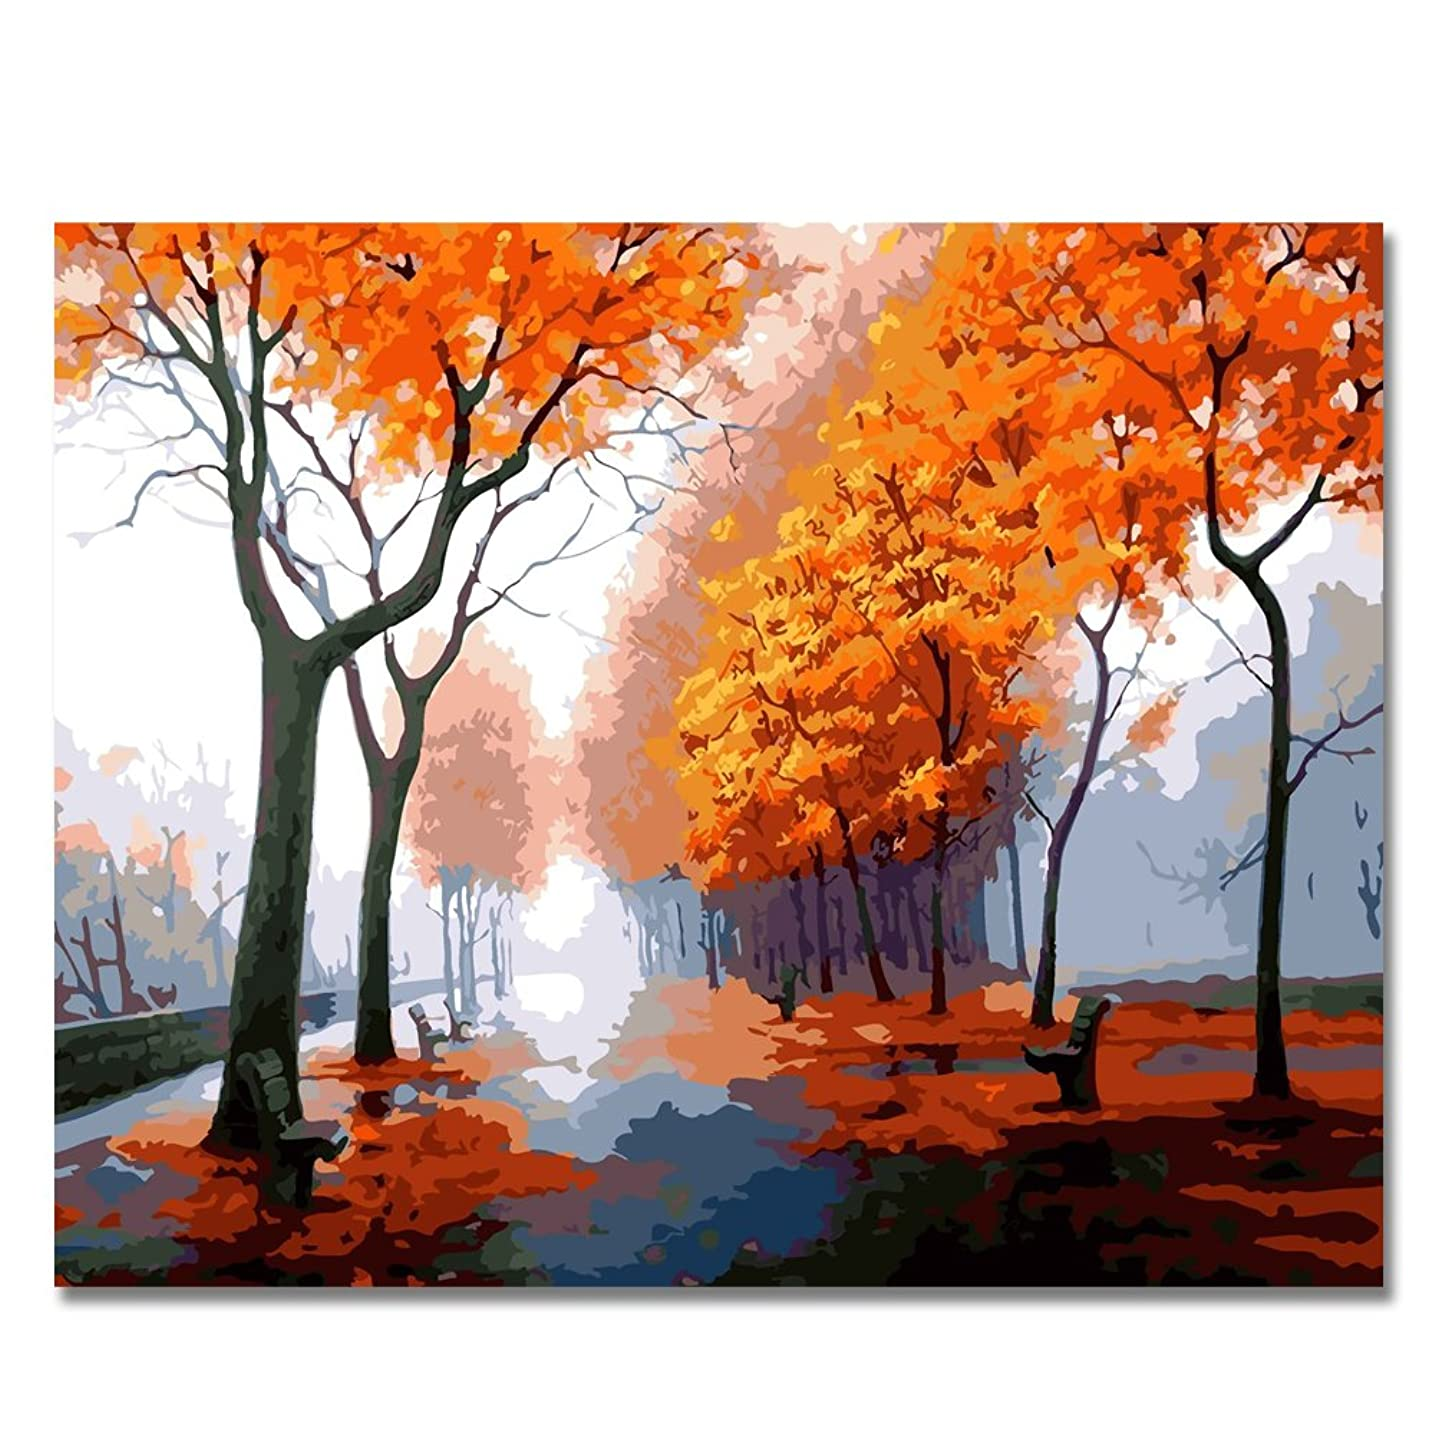 BOSHUN Paint by Numbers Kits with Brushes and Acrylic Pigment DIY Canvas Painting for Adults Beginner- Autumn Scenery 16 x 20 inch(Without Frame)